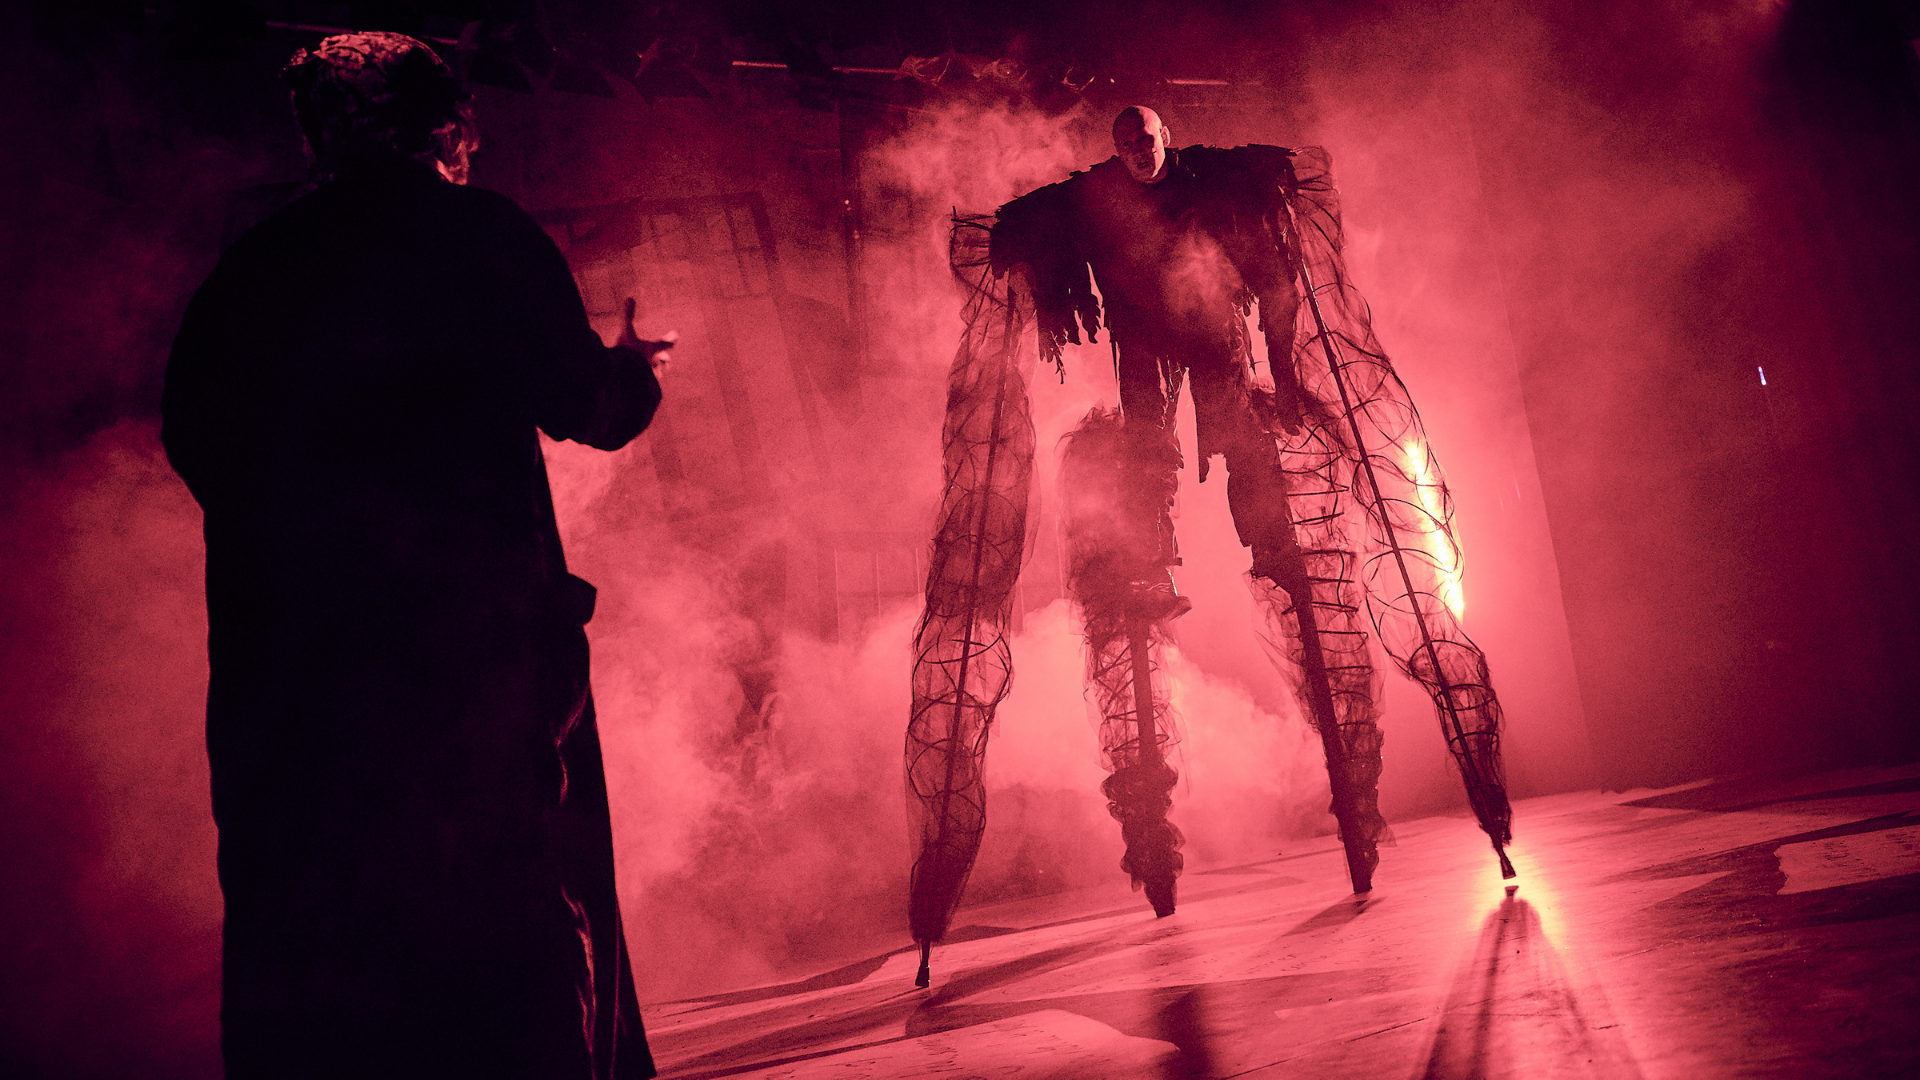 Christmas Carol production shot: An actor on stilts creates a look of a large ghostly monster. Smoke and red lighting fills the image